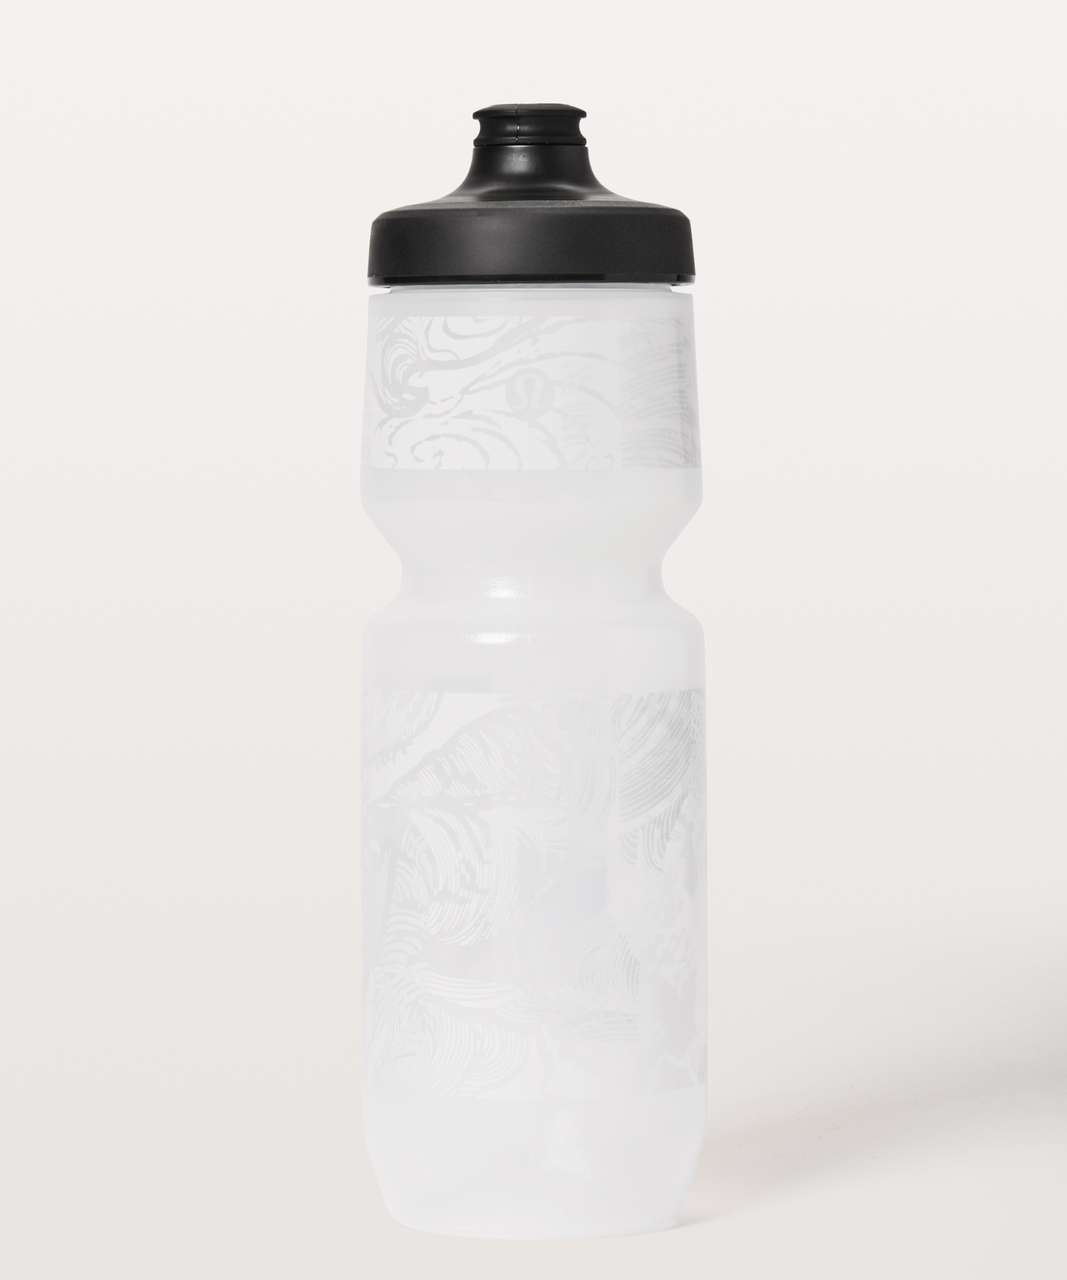 Lululemon Purist Cycling Water Bottle *26 oz - Purist Eternal Wave White